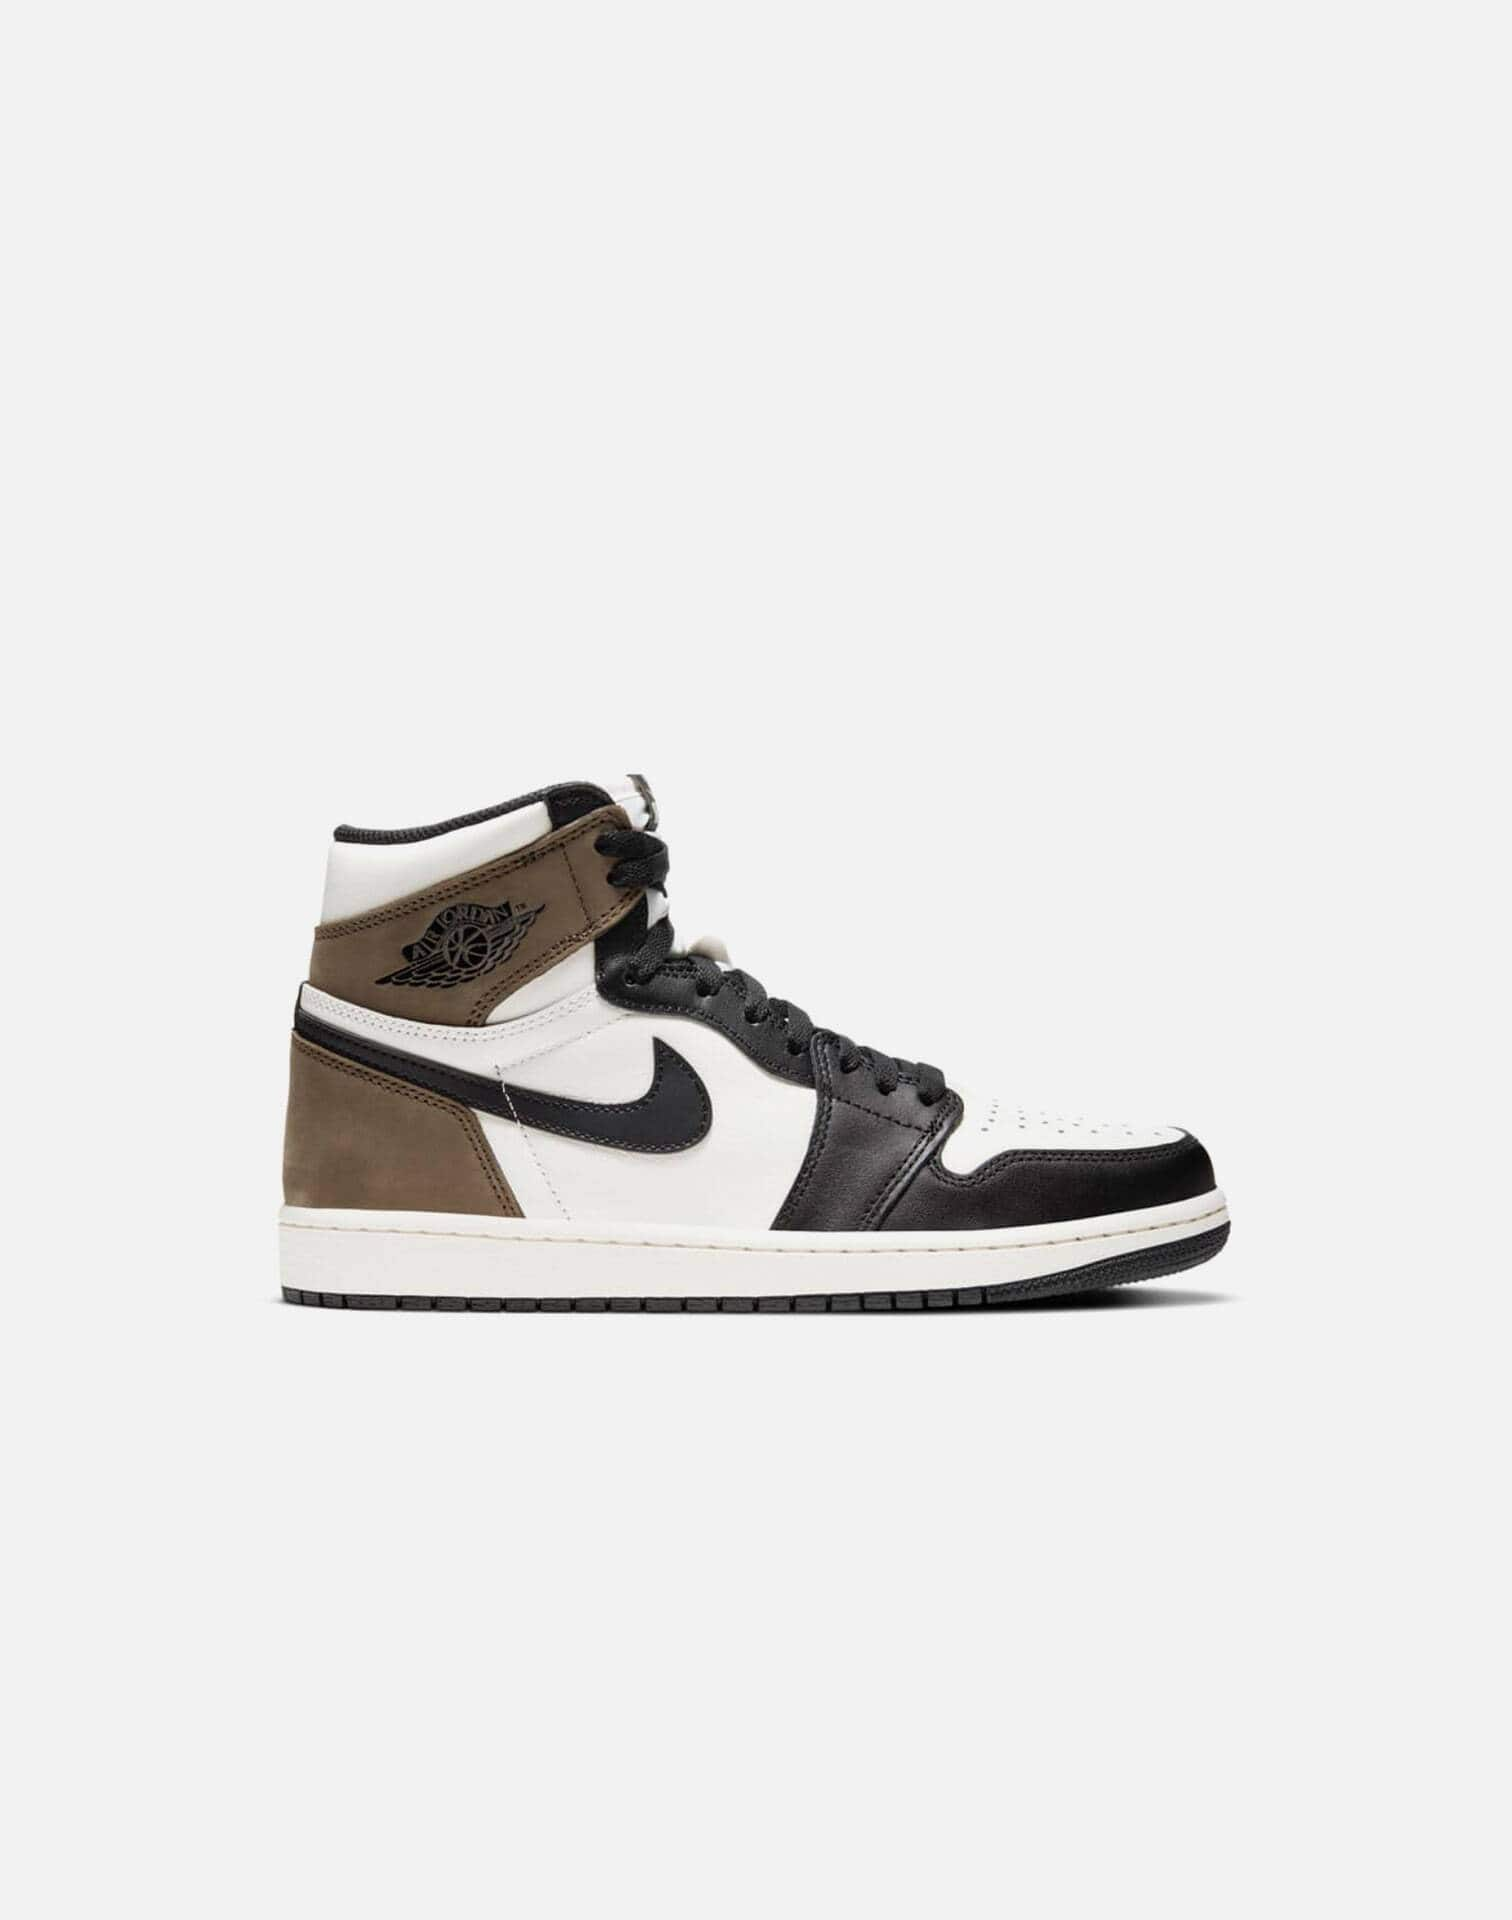 Jordan AIR JORDAN RETRO 1 HIGH OG 'DARK MOCHA' GRADE-SCHOOL